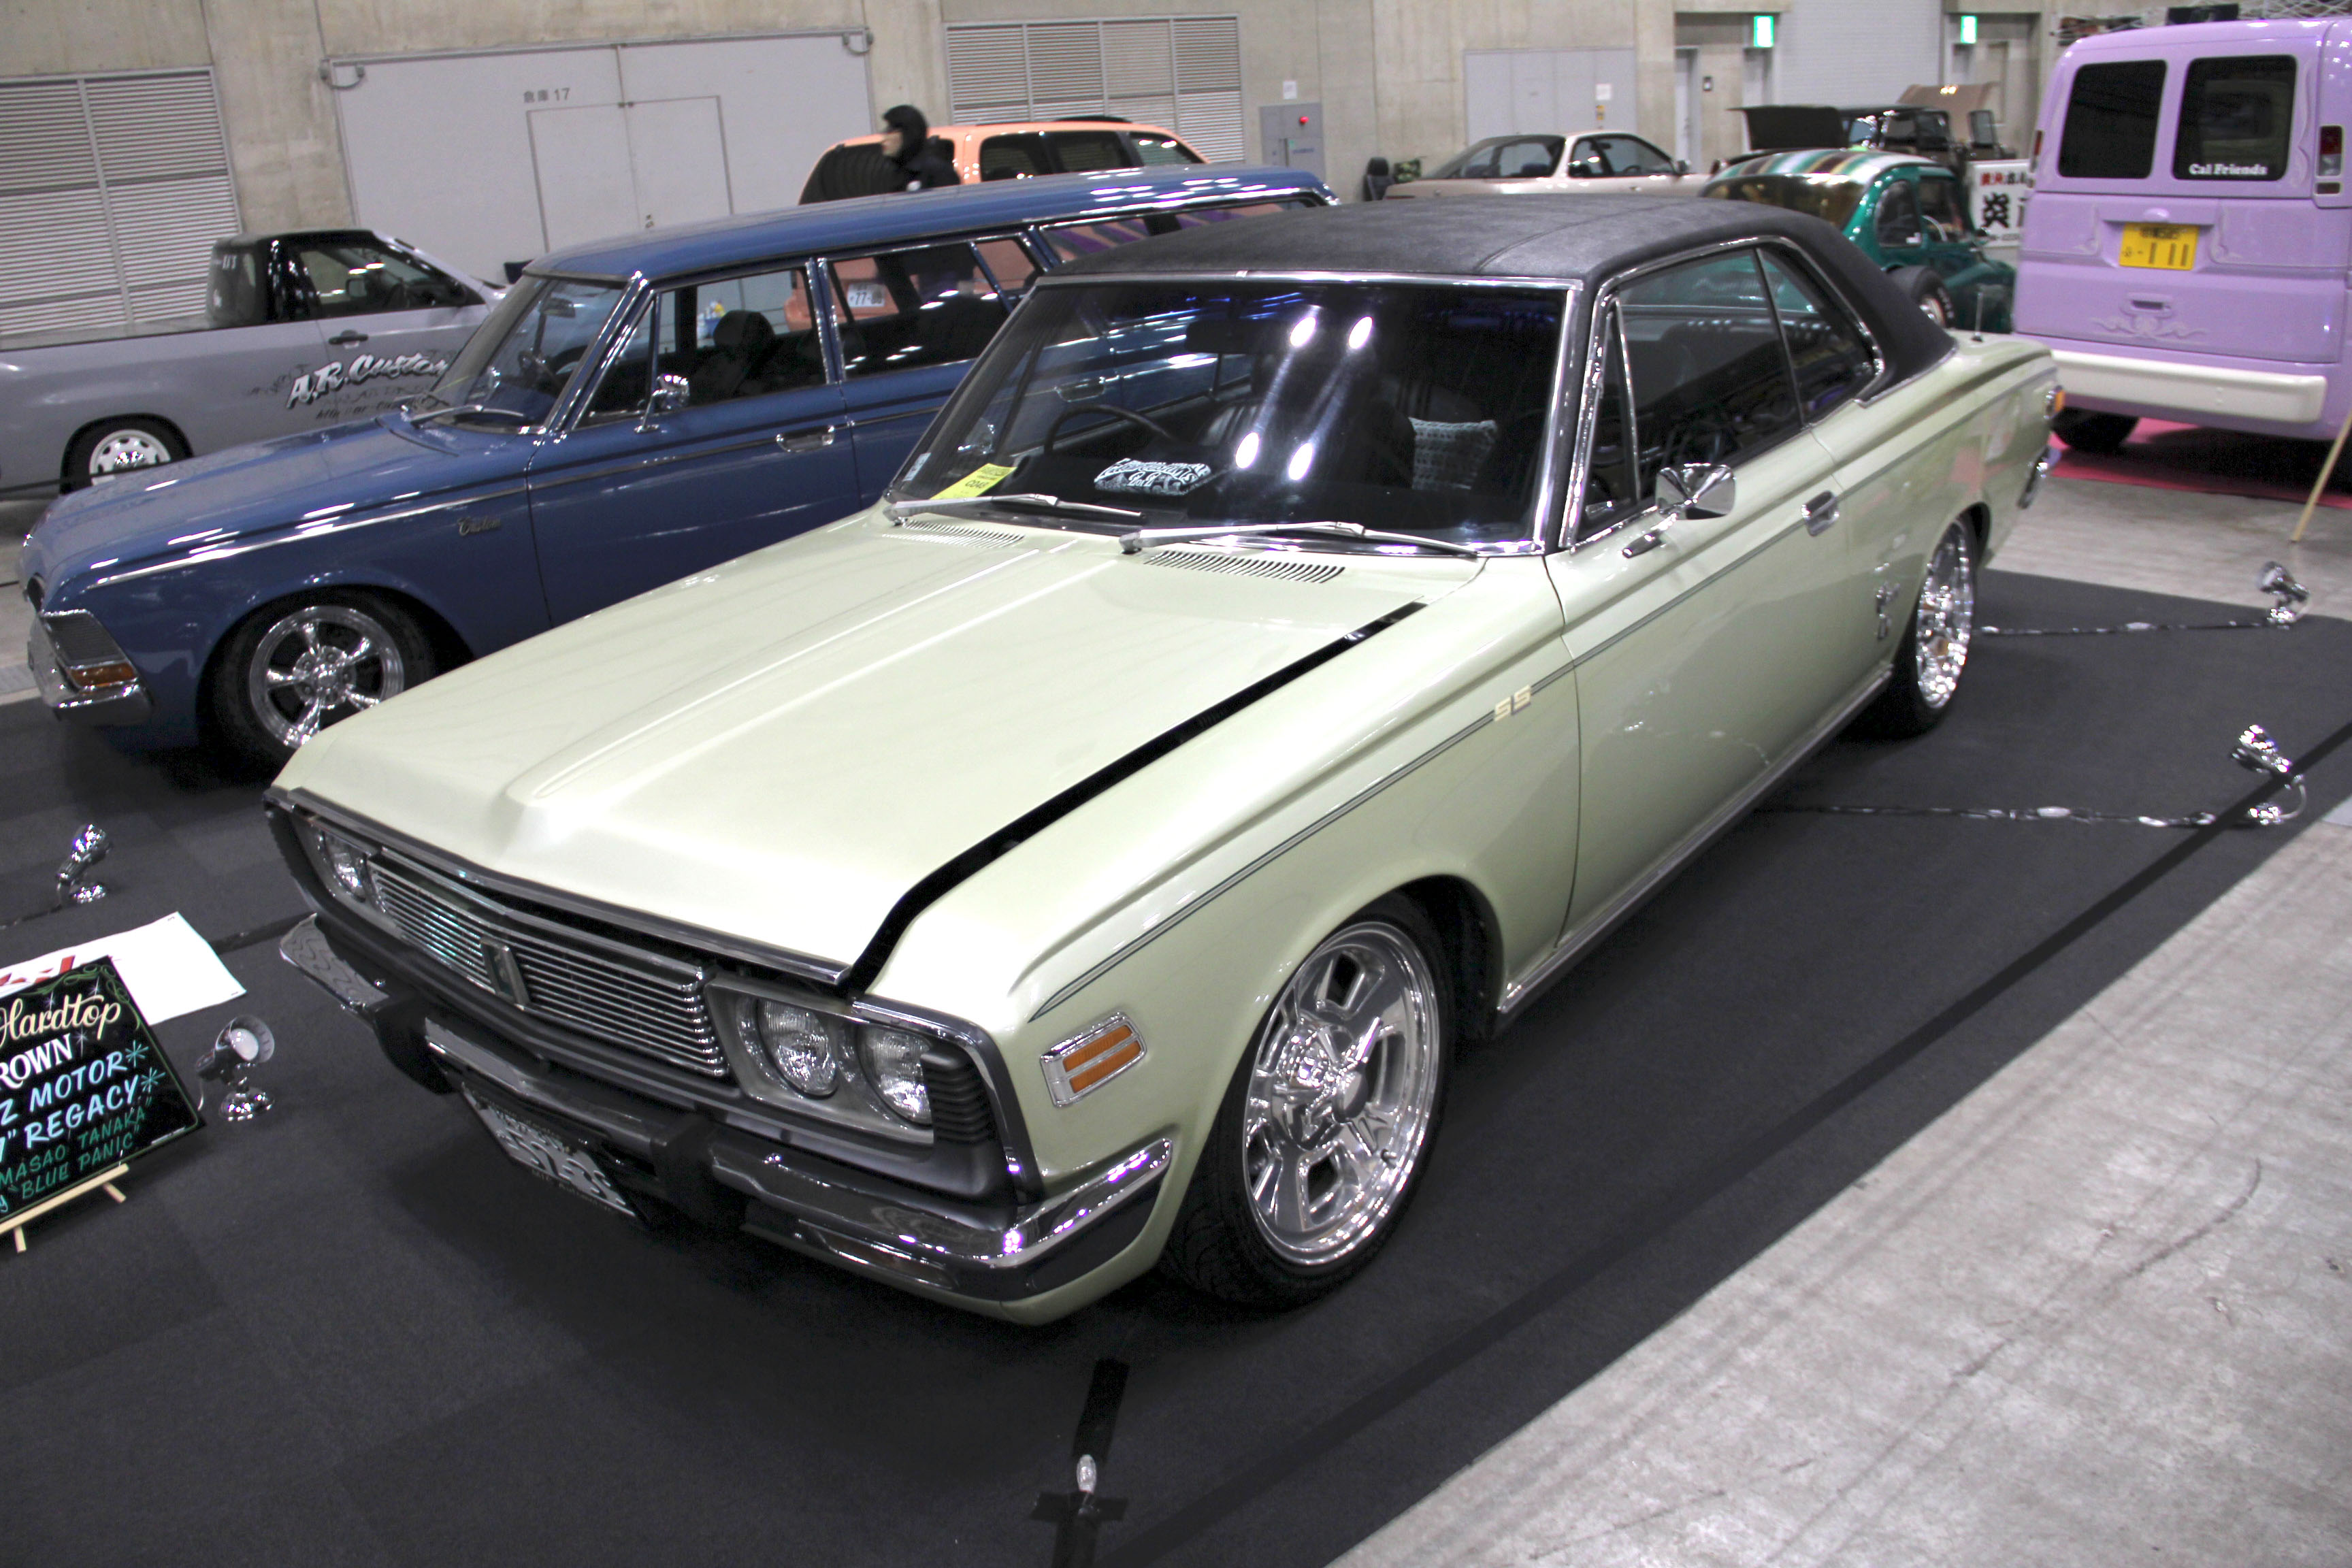 3306_Toyota-Crown-MS51-hardtop